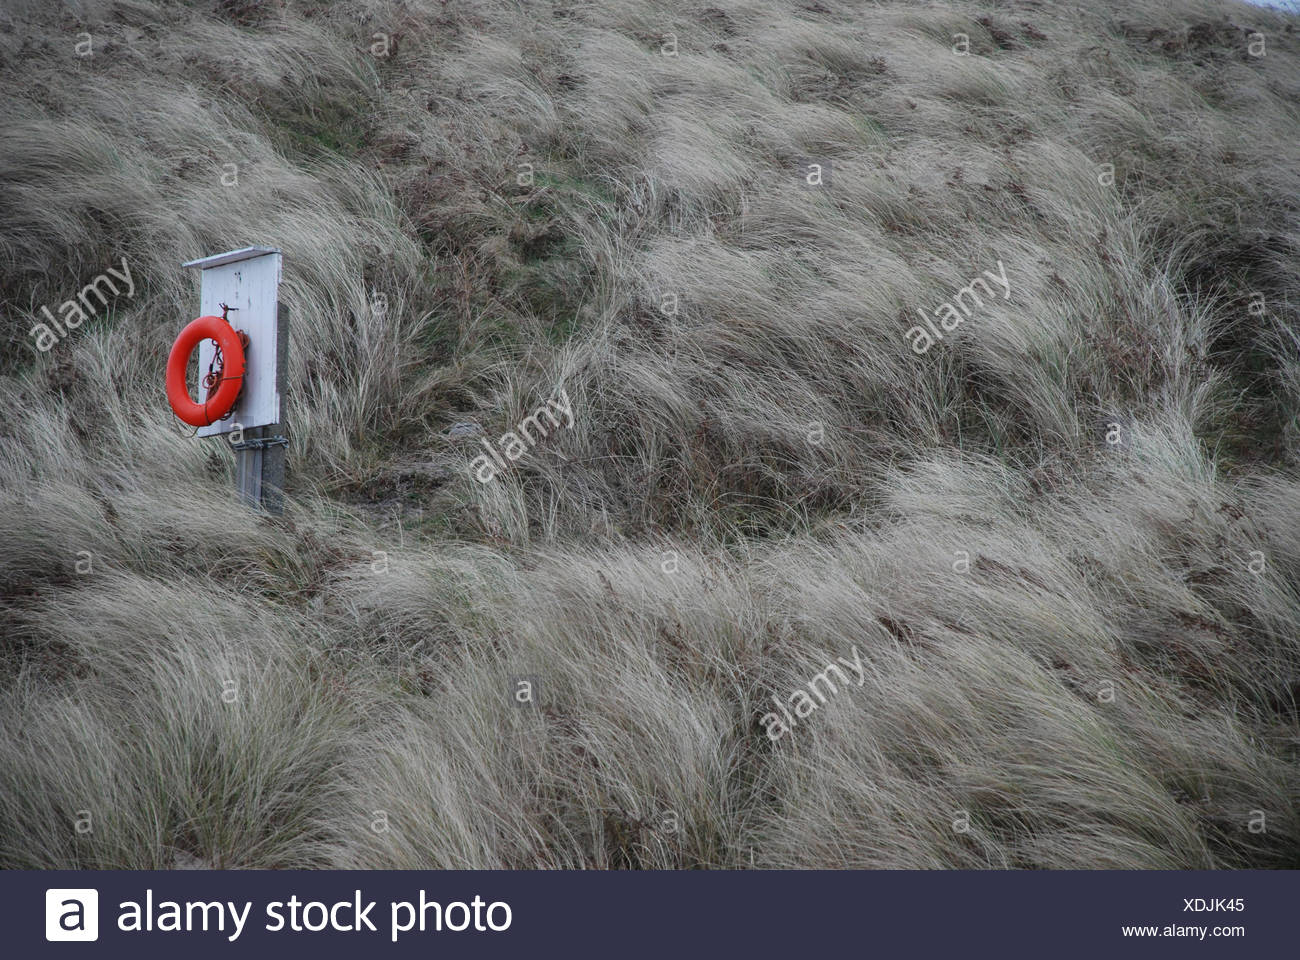 Life saver ring in long grass - Stock Image